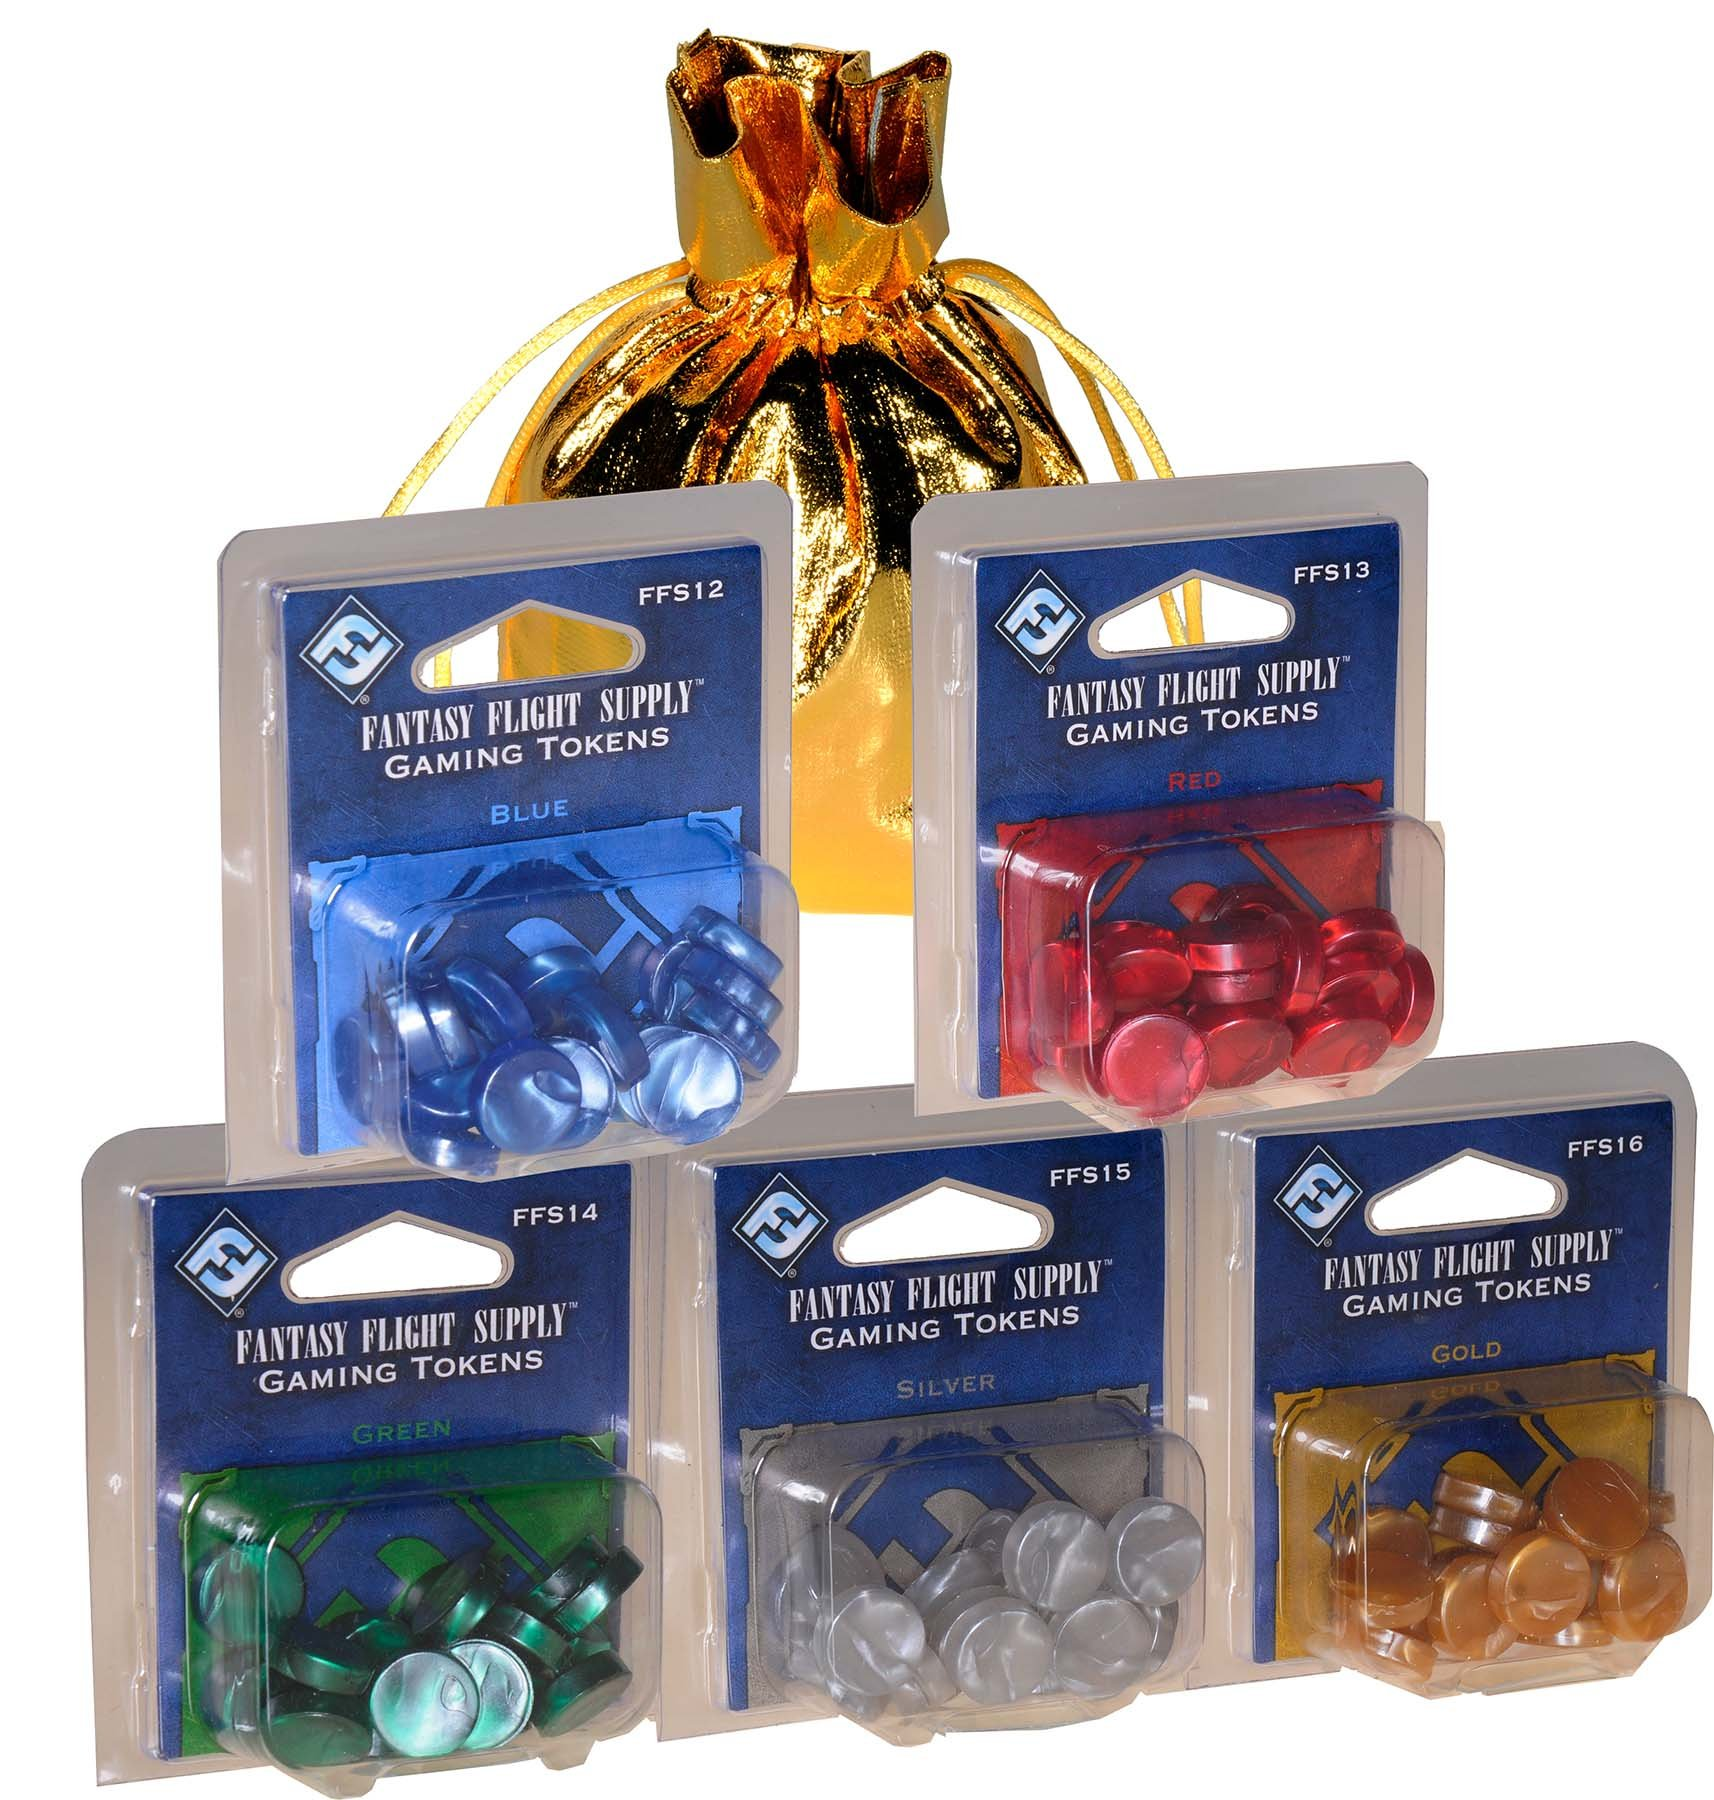 Gaming Tokens _ Marblized Plastic _ Set 20 each in 5 Colors _ Blue, Green, Red, Silver & Gold _ Bonus Gold Drawstring Storage Pouch _ Bundled Items